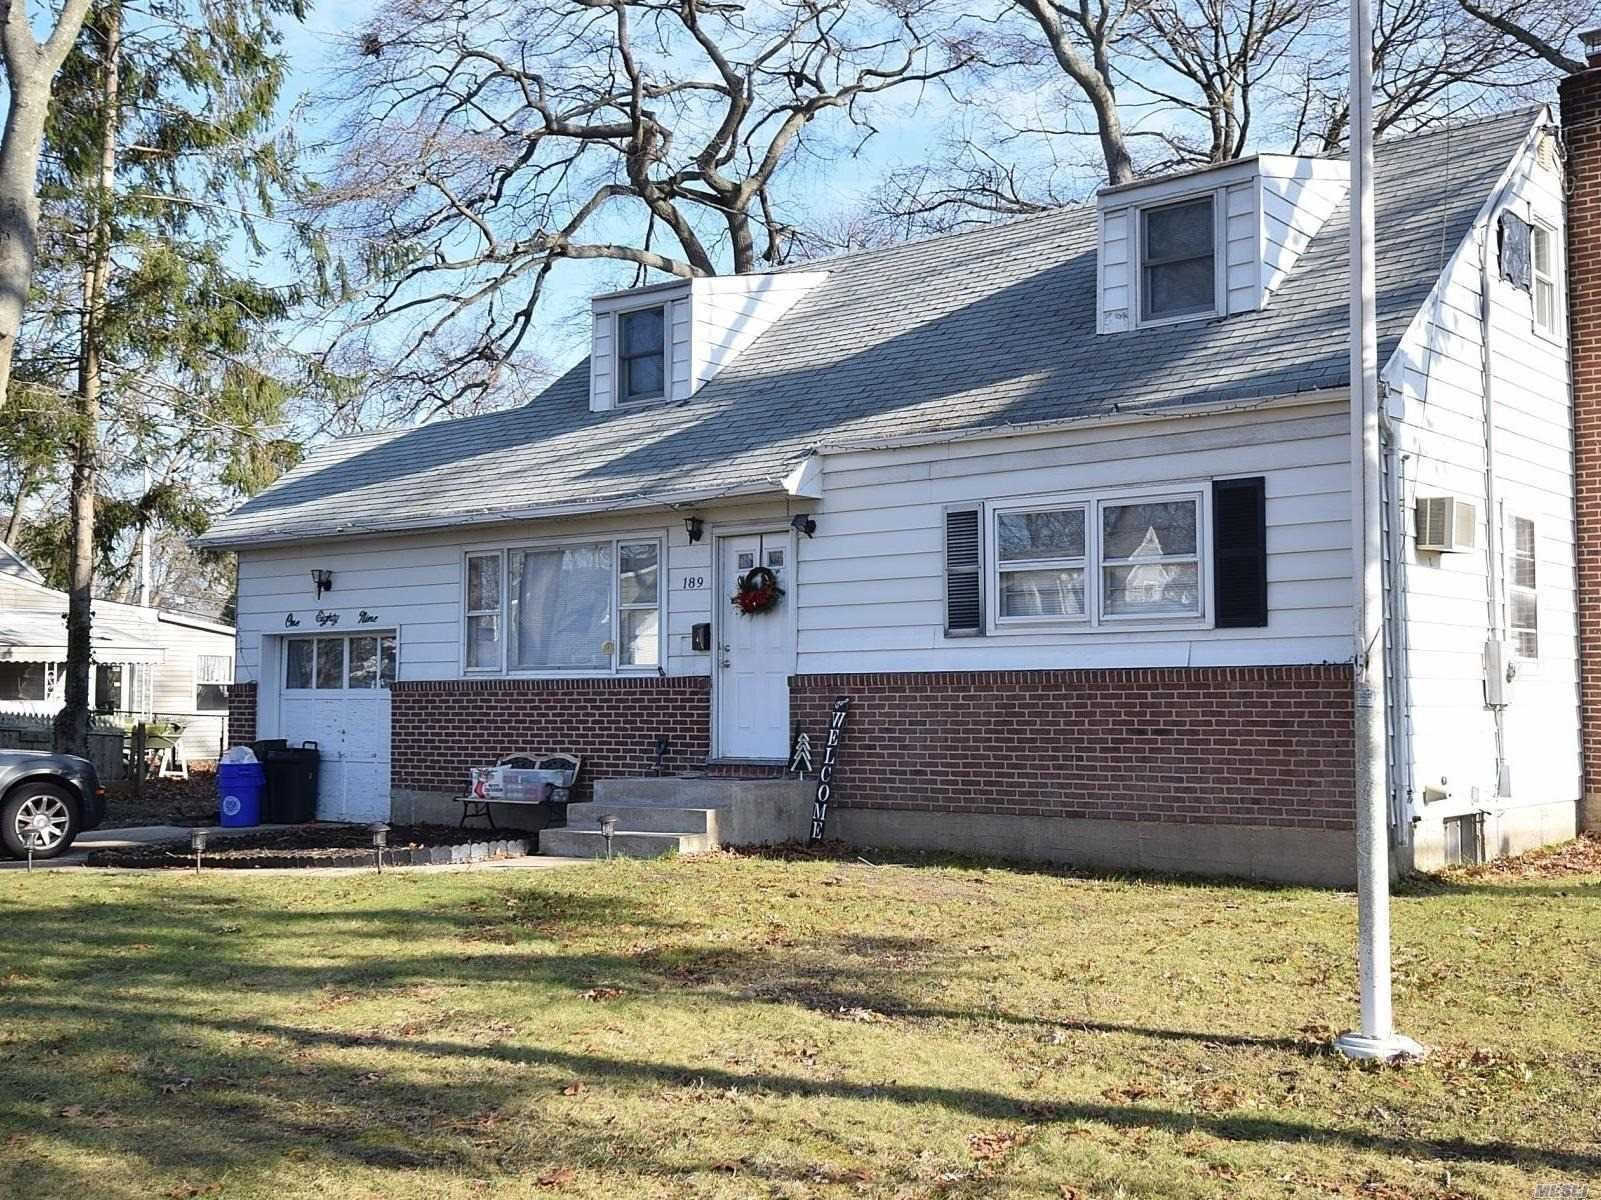 189 Whittier Avenue, N. Babylon, NY 11703 - MLS#: 3183325